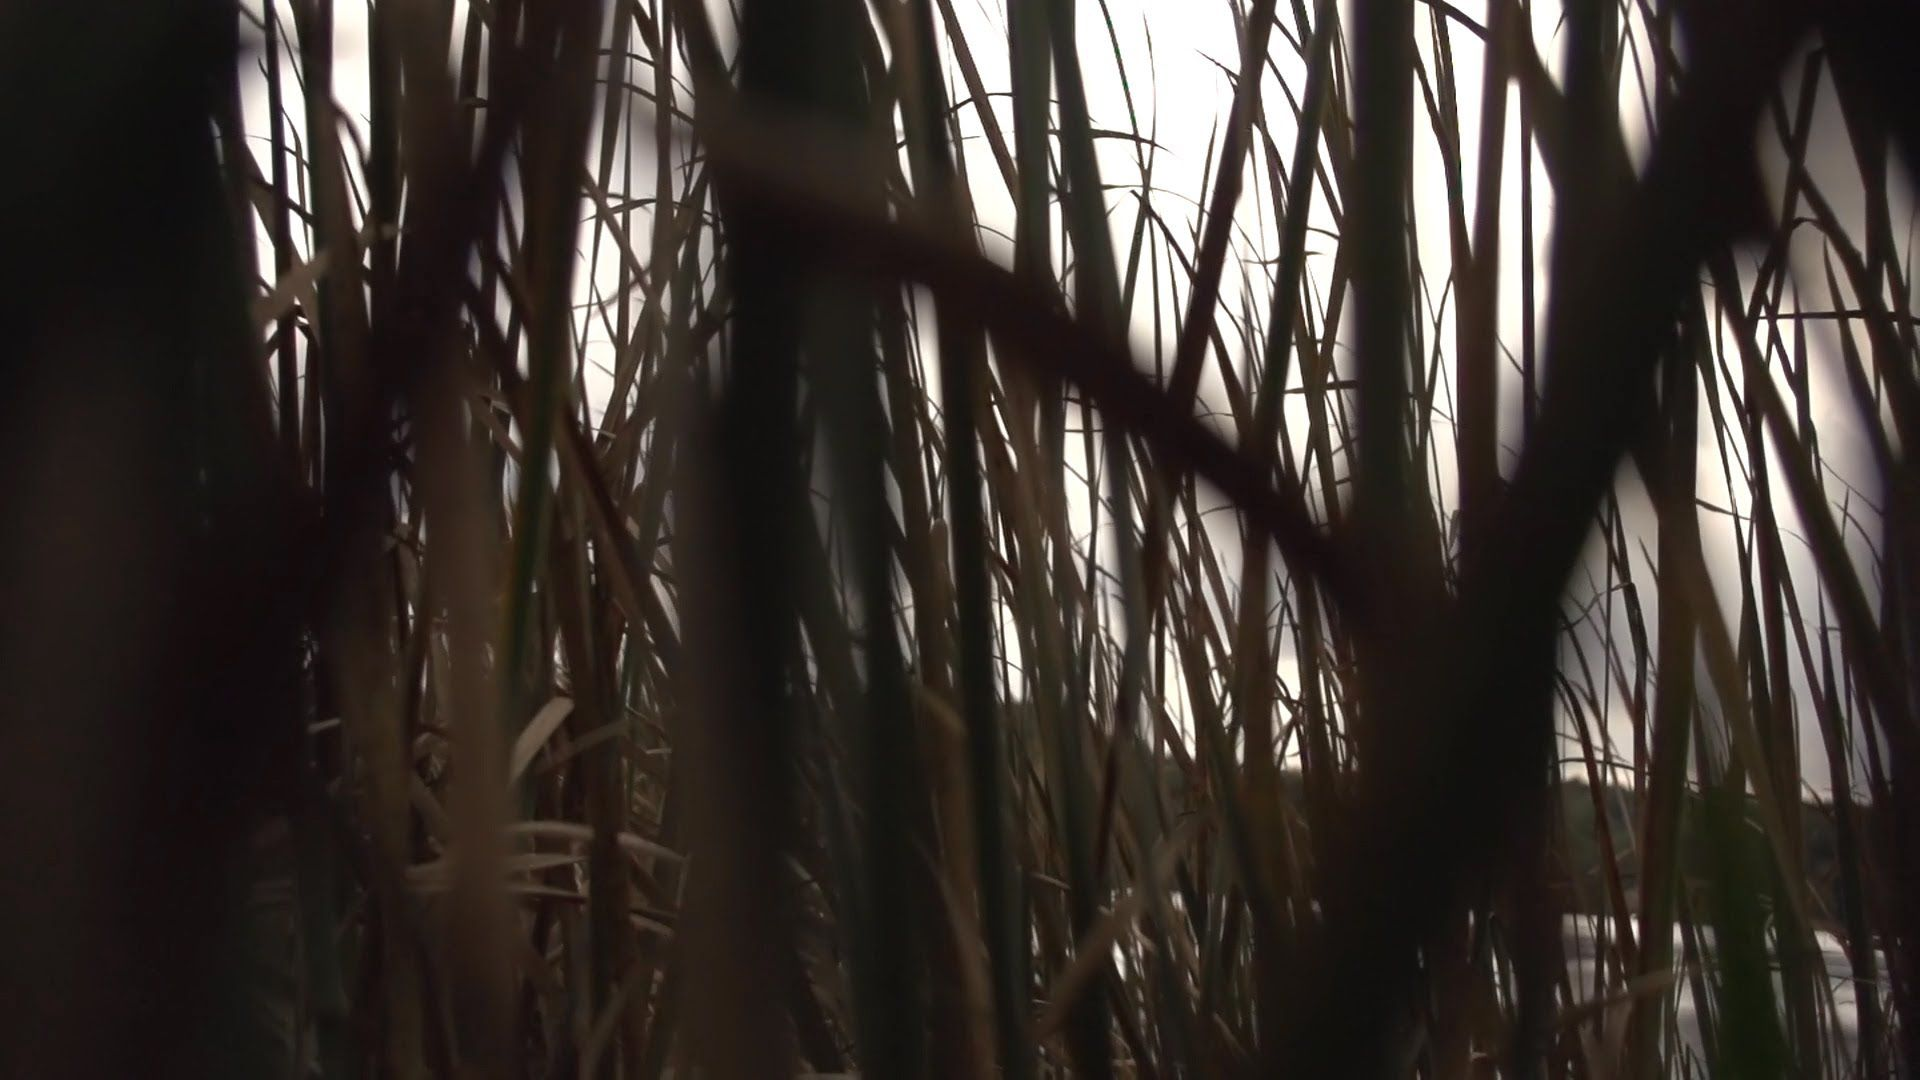 Beachfront B Roll Through The Swamp Free To Use Hd Stock Video Footage Stock Video Ghost Stories Swamp